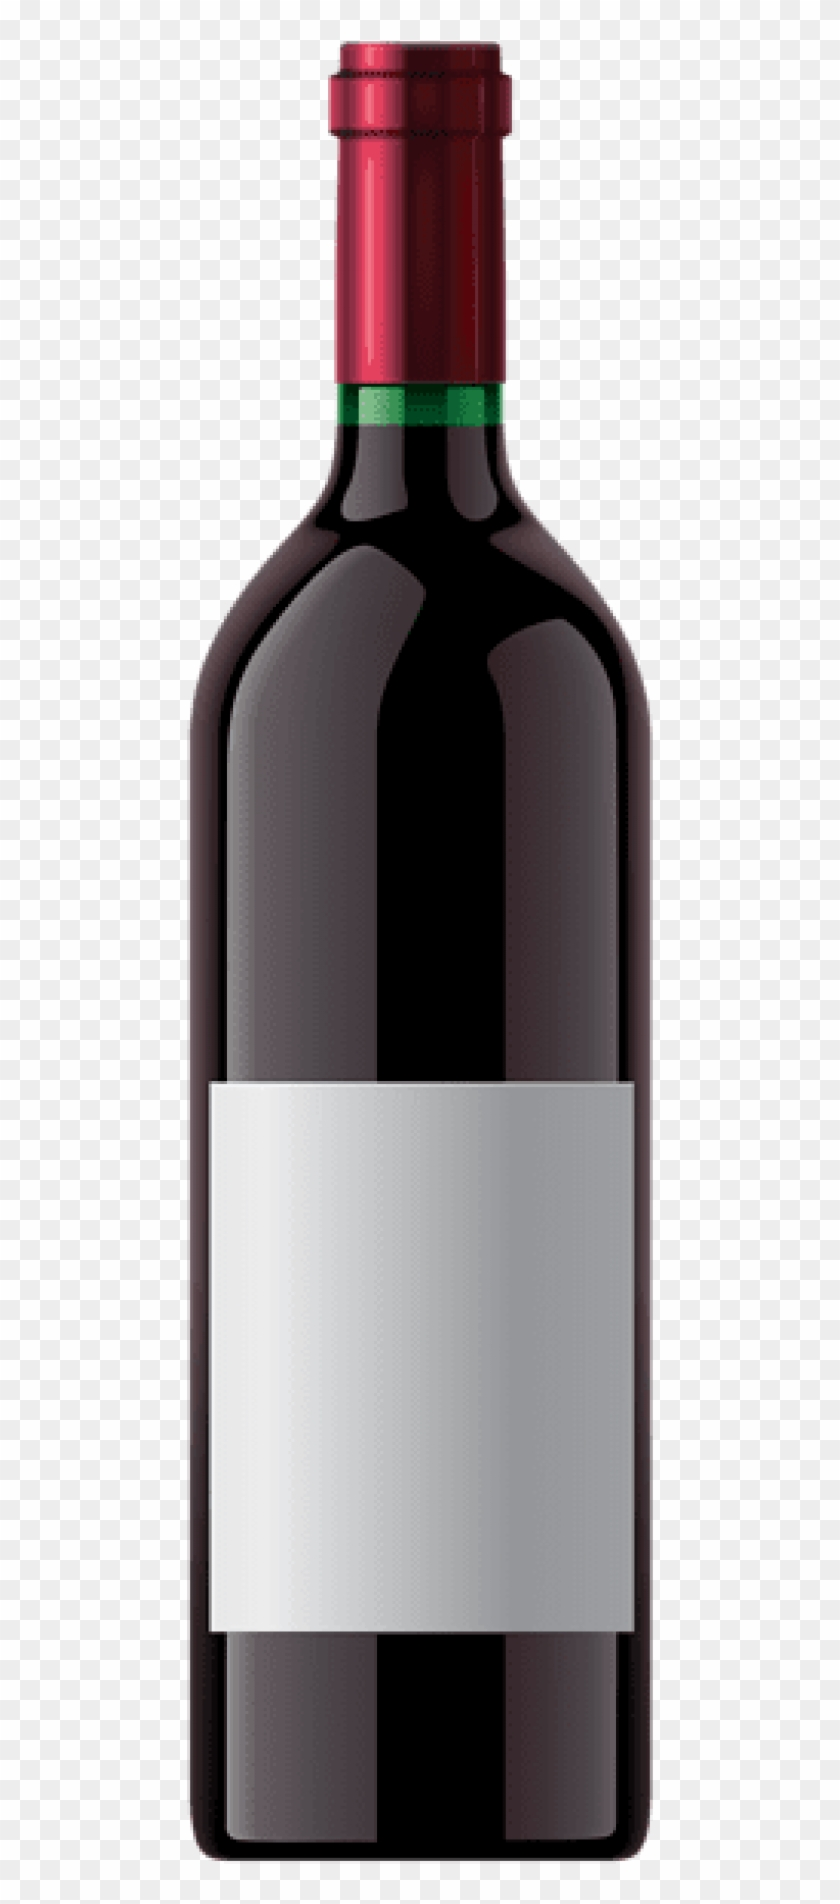 Free Png Download Red Wine Bottle Png Images Background - Transparent Background Red Wine Bottles Png, Png Download #984373